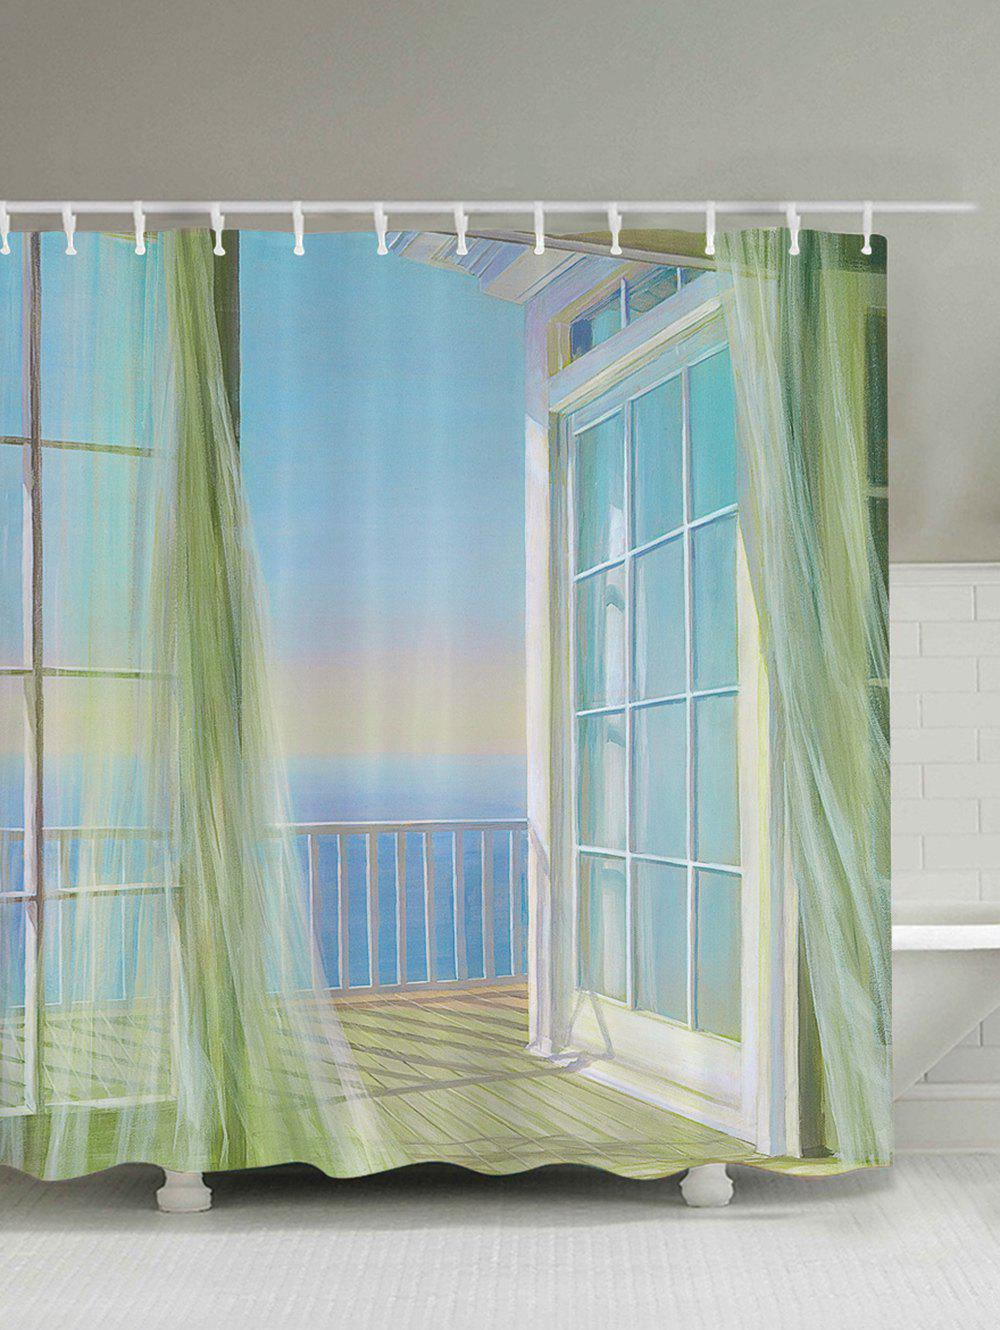 Shower Curtain For Bathroom Cheap Casual Style Online Free - Shower curtains for bathroom